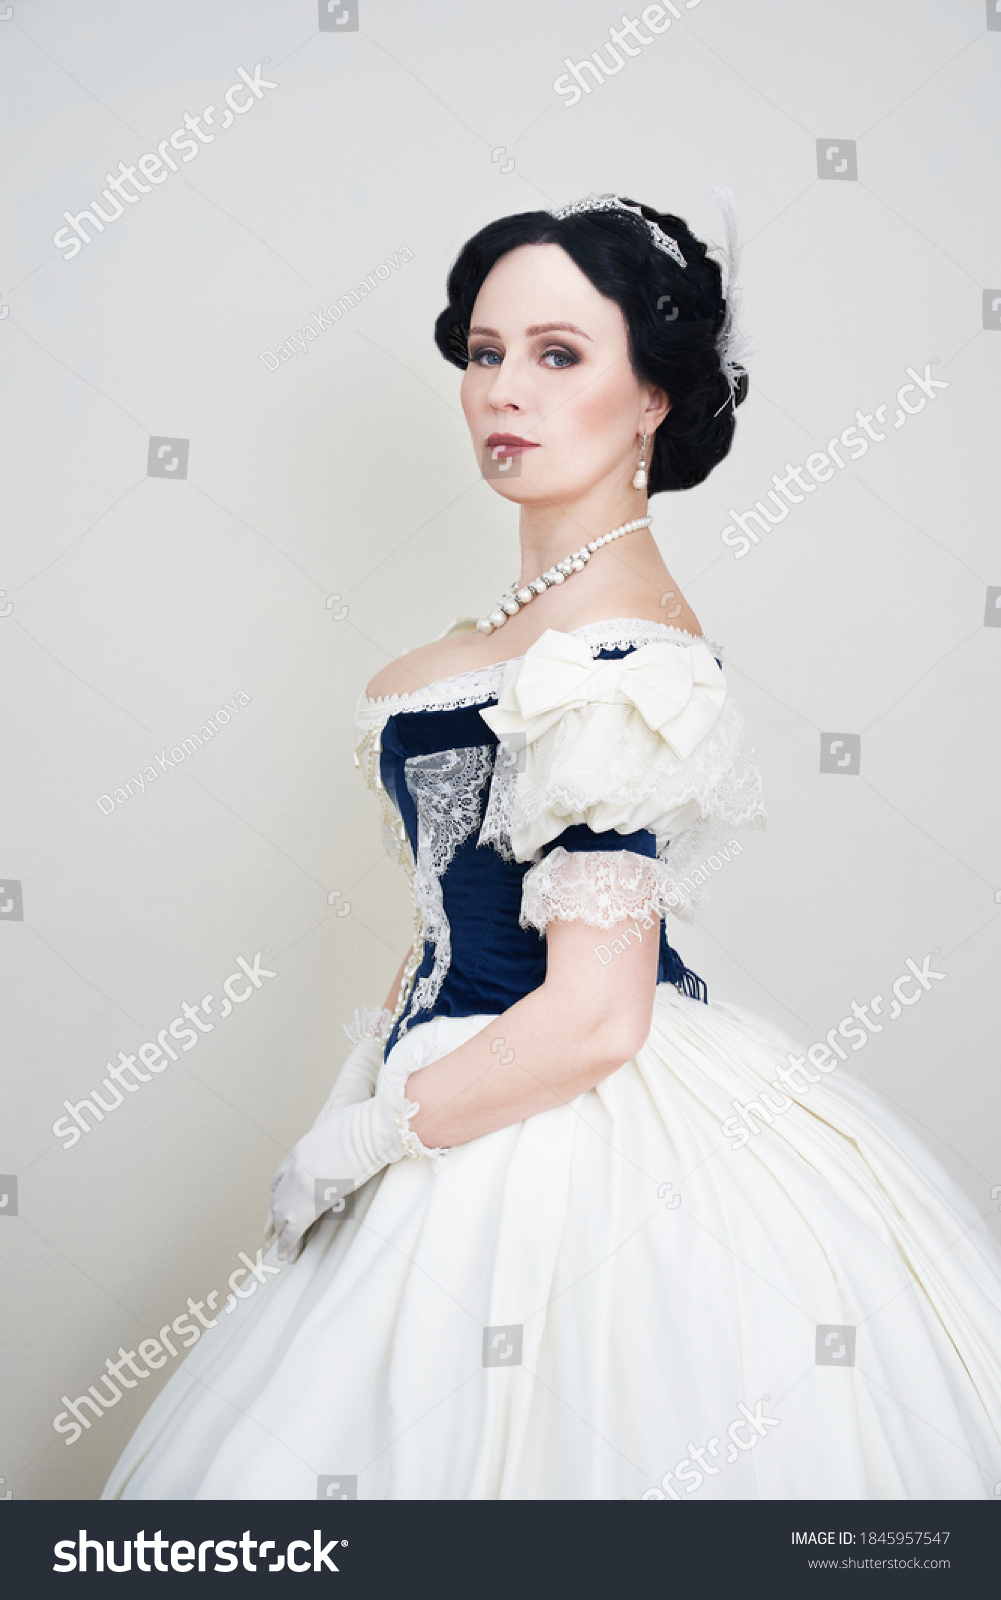 A beautiful elegant dark haired woman in a historic 1867 coronation dress on a white background looks at the camera #1845957547